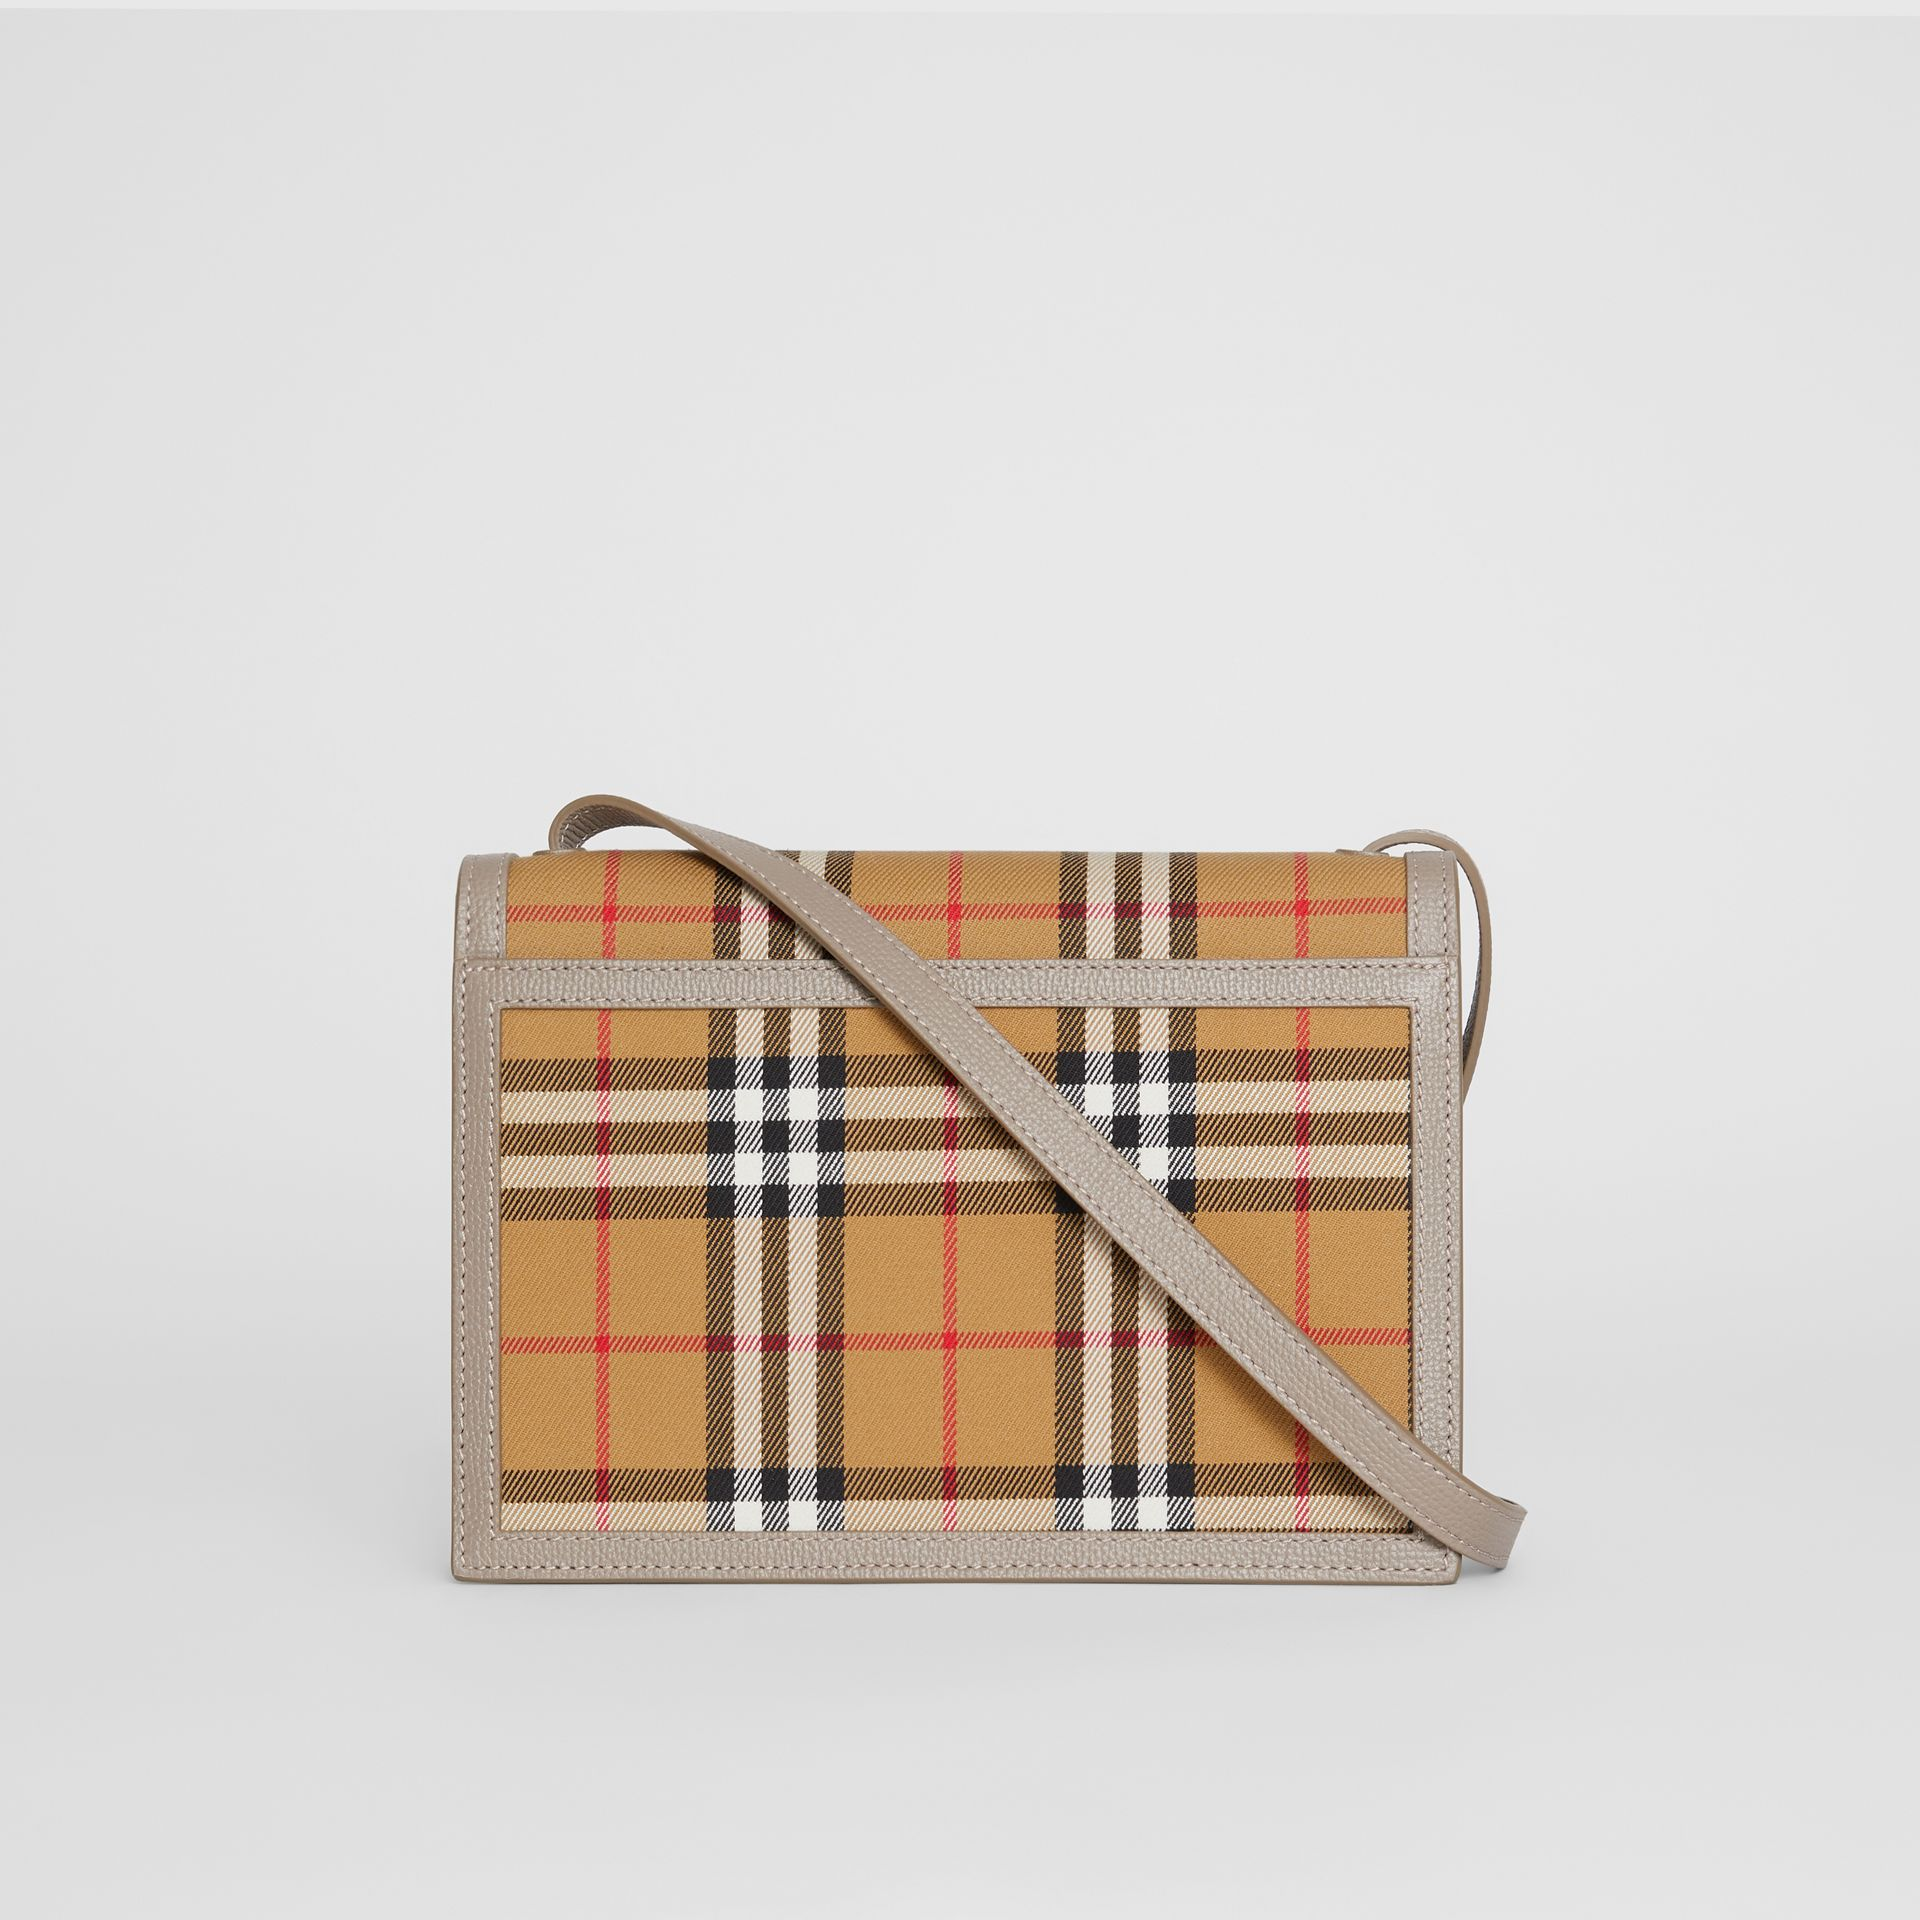 Small Vintage Check and Leather Crossbody Bag in Taupe Brown - Women | Burberry - gallery image 7